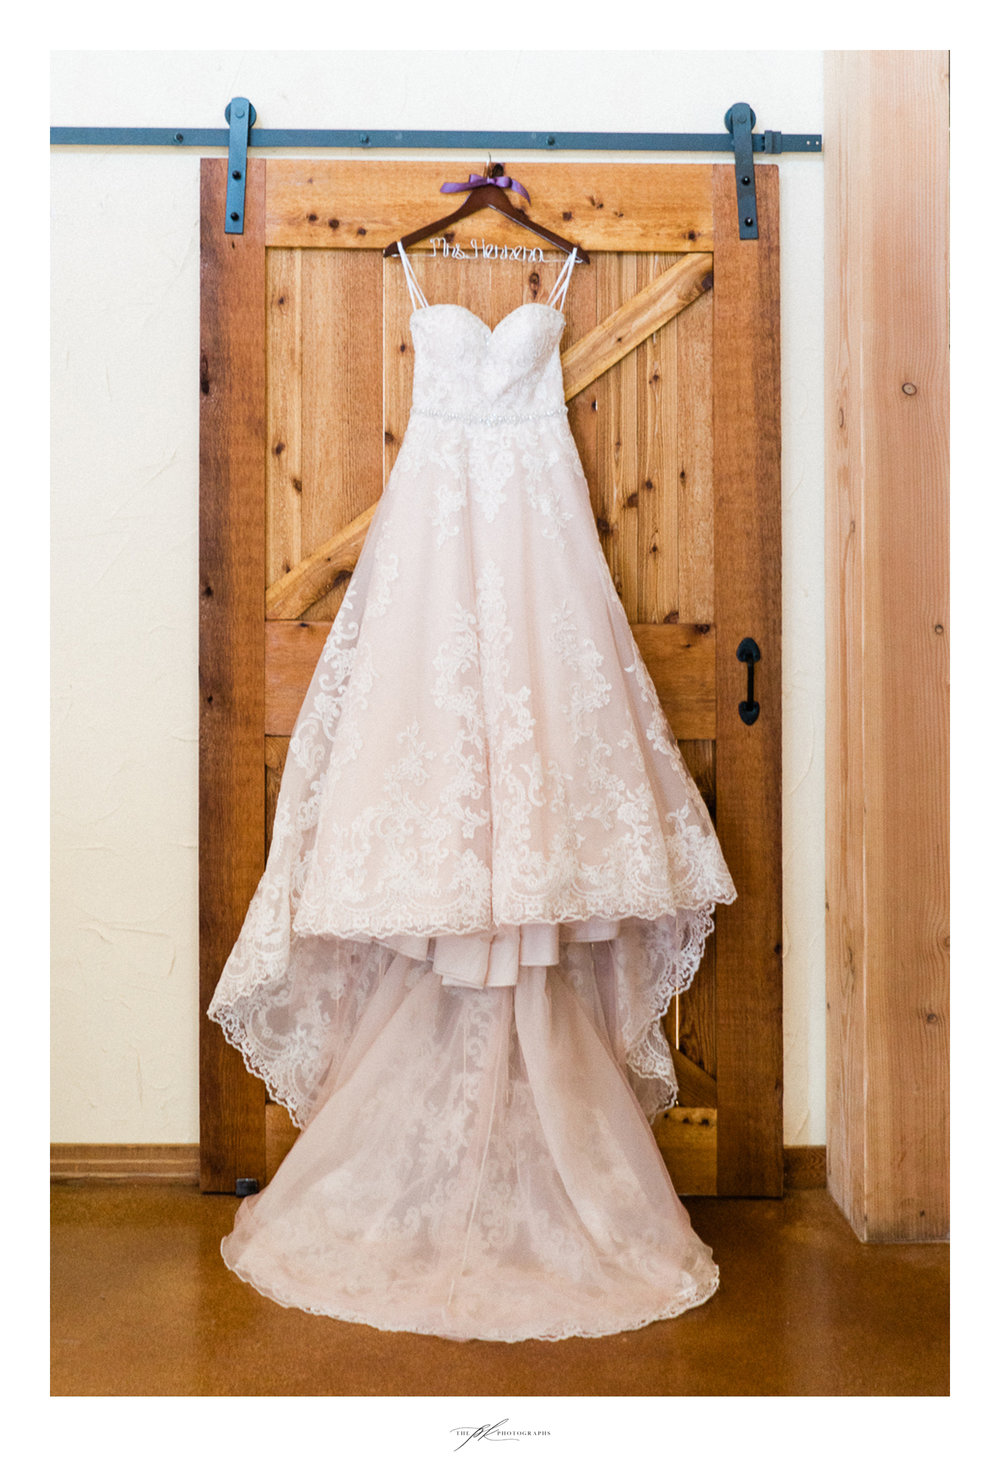 Bride's wedding dress at Magnolia Halle in San Antonio, Texas - Photographed by The PK Photographs